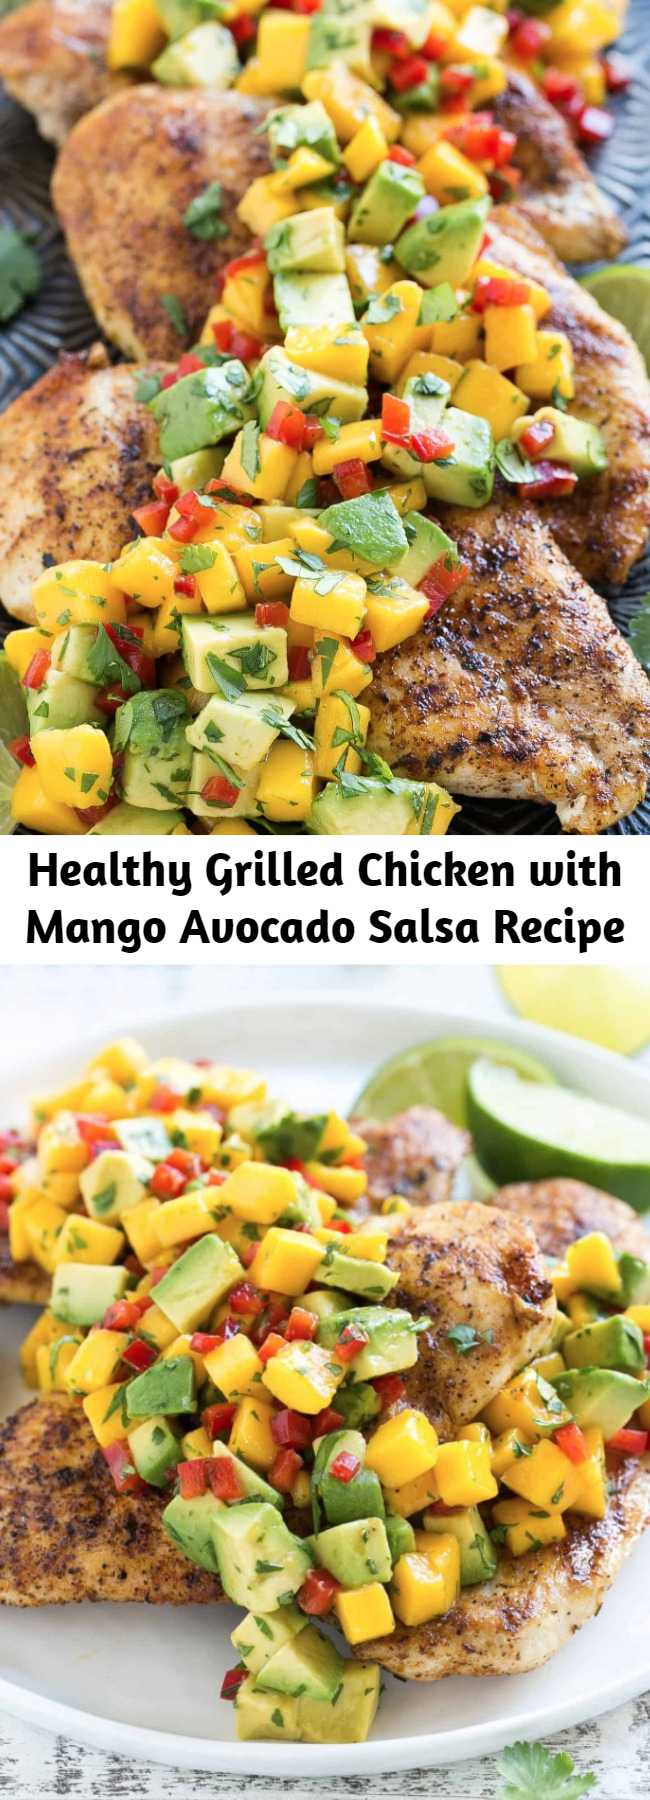 Healthy Grilled Chicken with Mango Avocado Salsa Recipe - Healthy and simple Grilled Chicken made with a super delicious Mango Salsa recipe. It's important to dress things up around the dinner table and this recipe is a good place to start. Adds some twist and flavor to your chicken recipe.